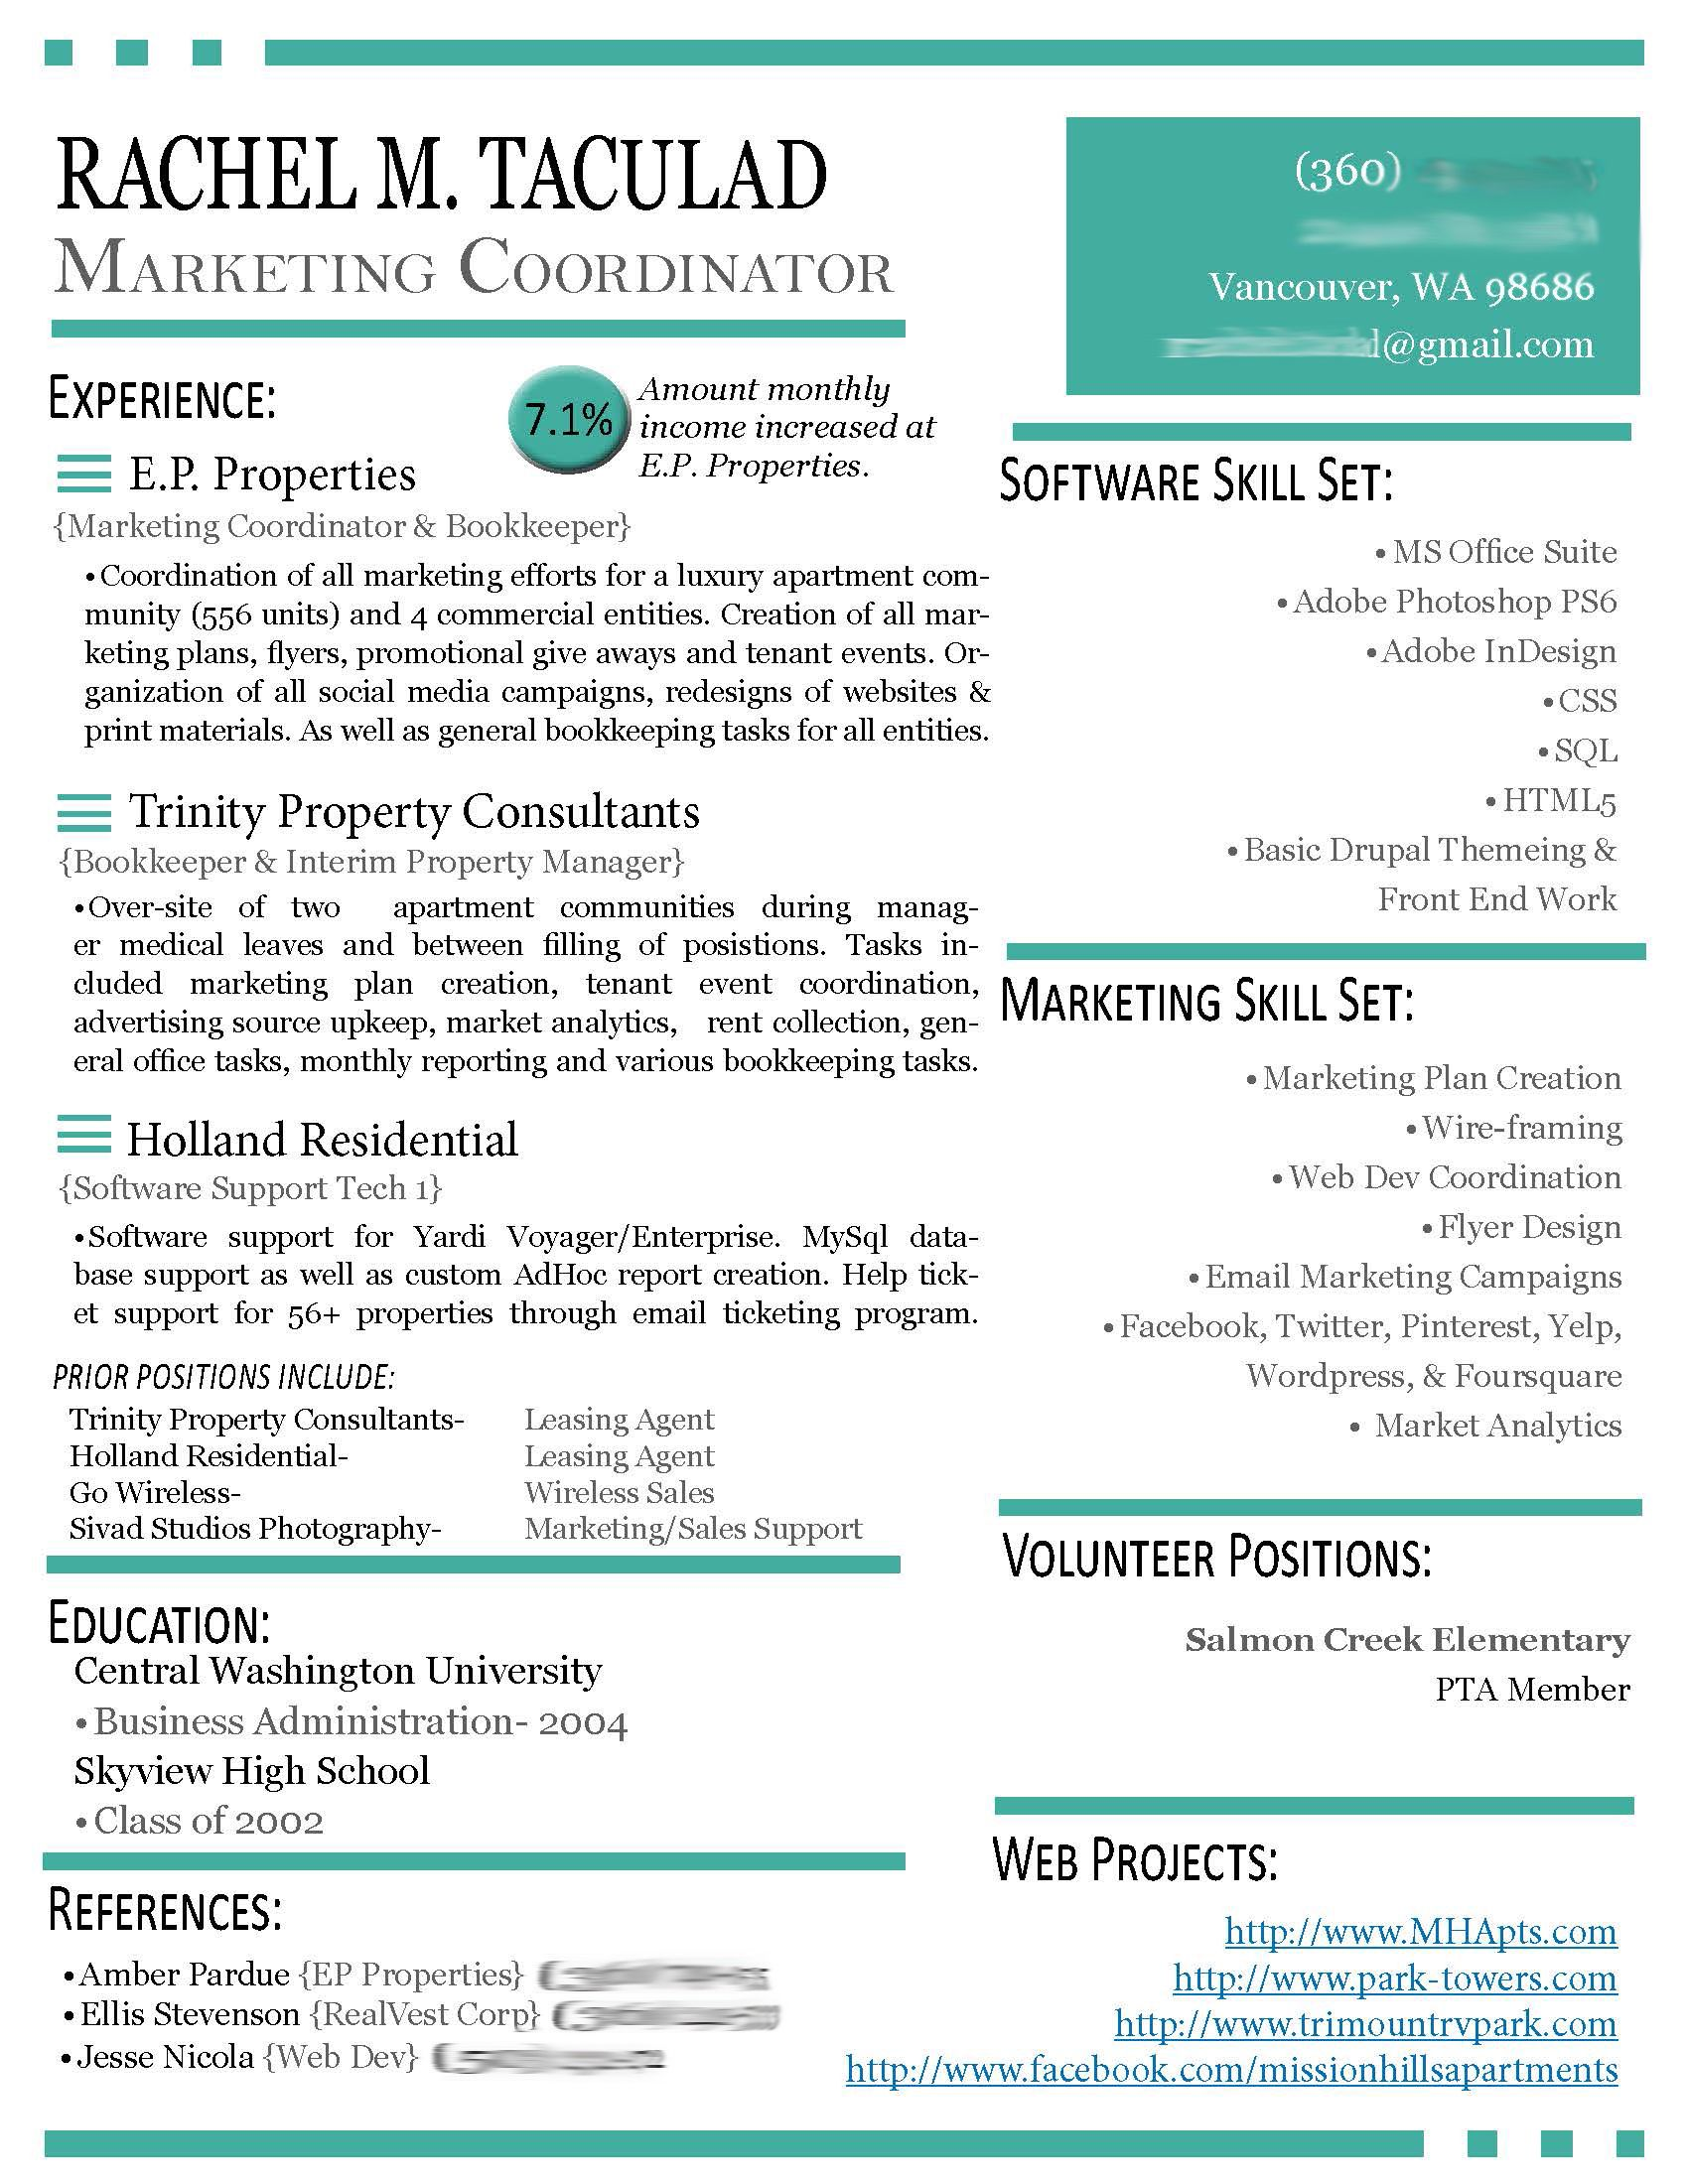 Opposenewapstandardsus  Remarkable  Images About Work Stuff On Pinterest  Resume Professional  With Inspiring  Images About Work Stuff On Pinterest  Resume Professional Resume Template And Resume Templates With Cool Cashier Resume Description Also How To Word A Resume In Addition Superintendent Resume And Sample Of Cover Letter For Resume As Well As Mac Resume Templates Additionally Excellent Resume Examples From Pinterestcom With Opposenewapstandardsus  Inspiring  Images About Work Stuff On Pinterest  Resume Professional  With Cool  Images About Work Stuff On Pinterest  Resume Professional Resume Template And Resume Templates And Remarkable Cashier Resume Description Also How To Word A Resume In Addition Superintendent Resume From Pinterestcom